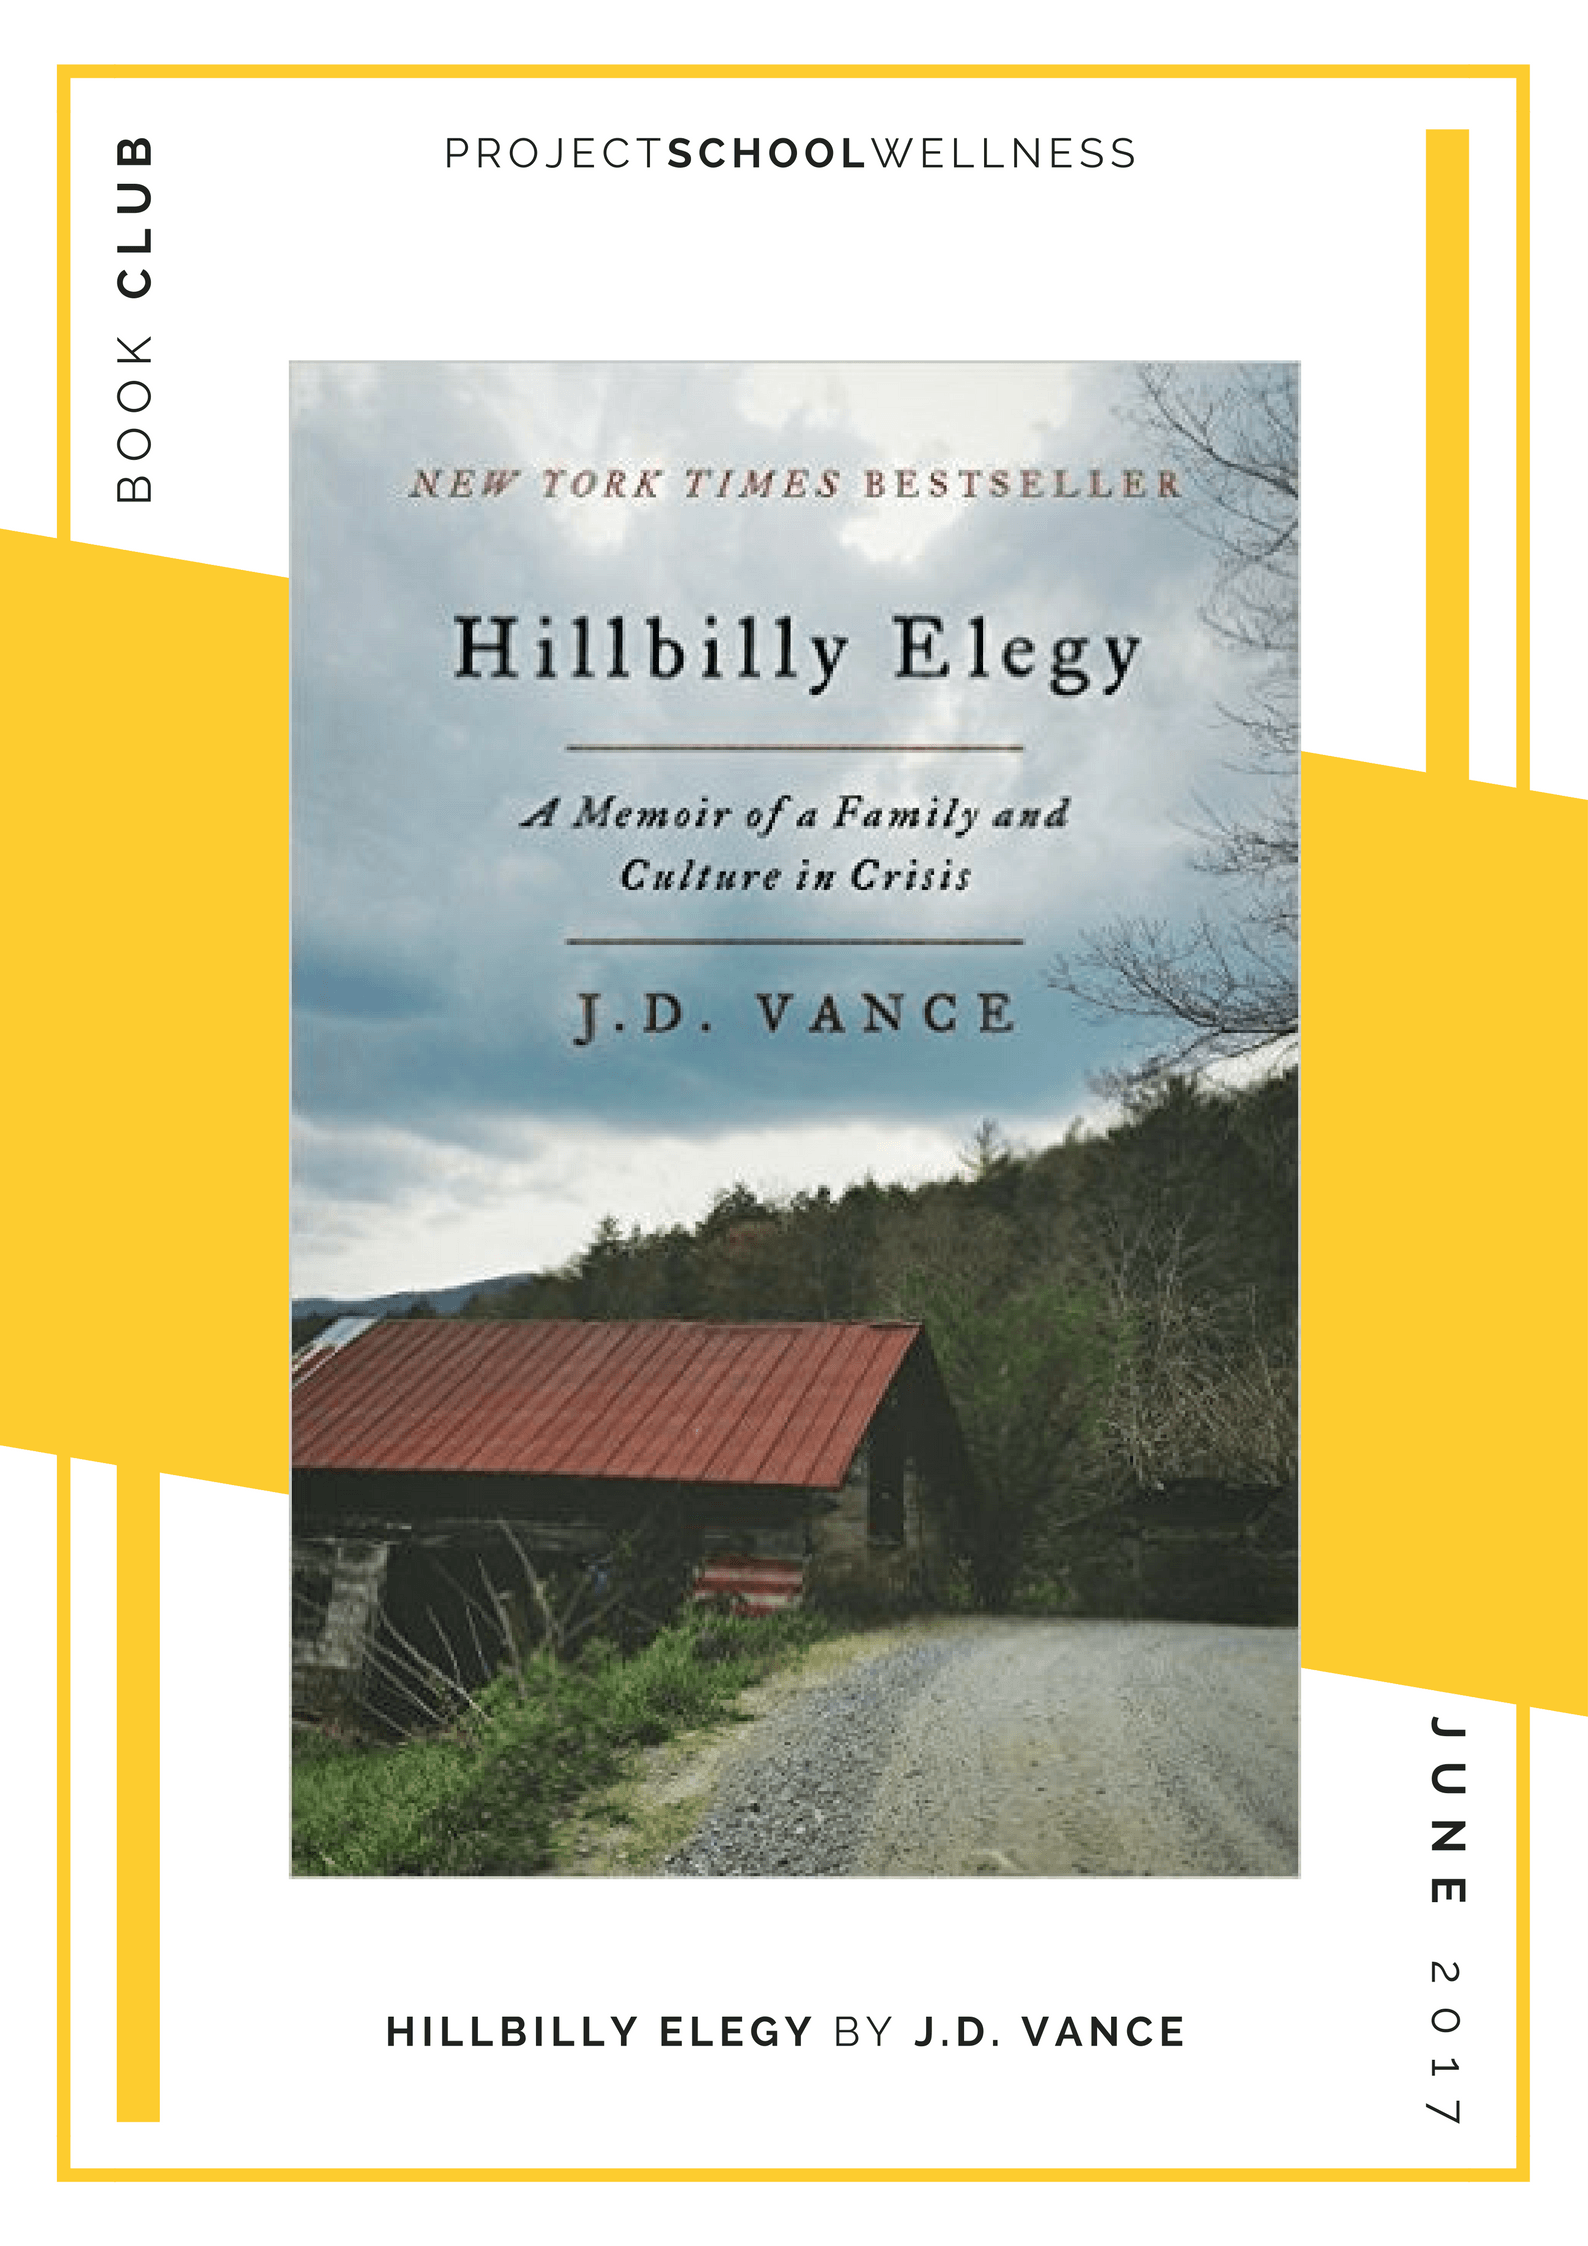 Project School Wellness book club. A list of must read books for teachers and parents! Each month Janelle from Project School Wellness her most current reads. Learn about an often overlooked and underrepresented population in J.D. Vance's memoir, Hillbilly Elegy.